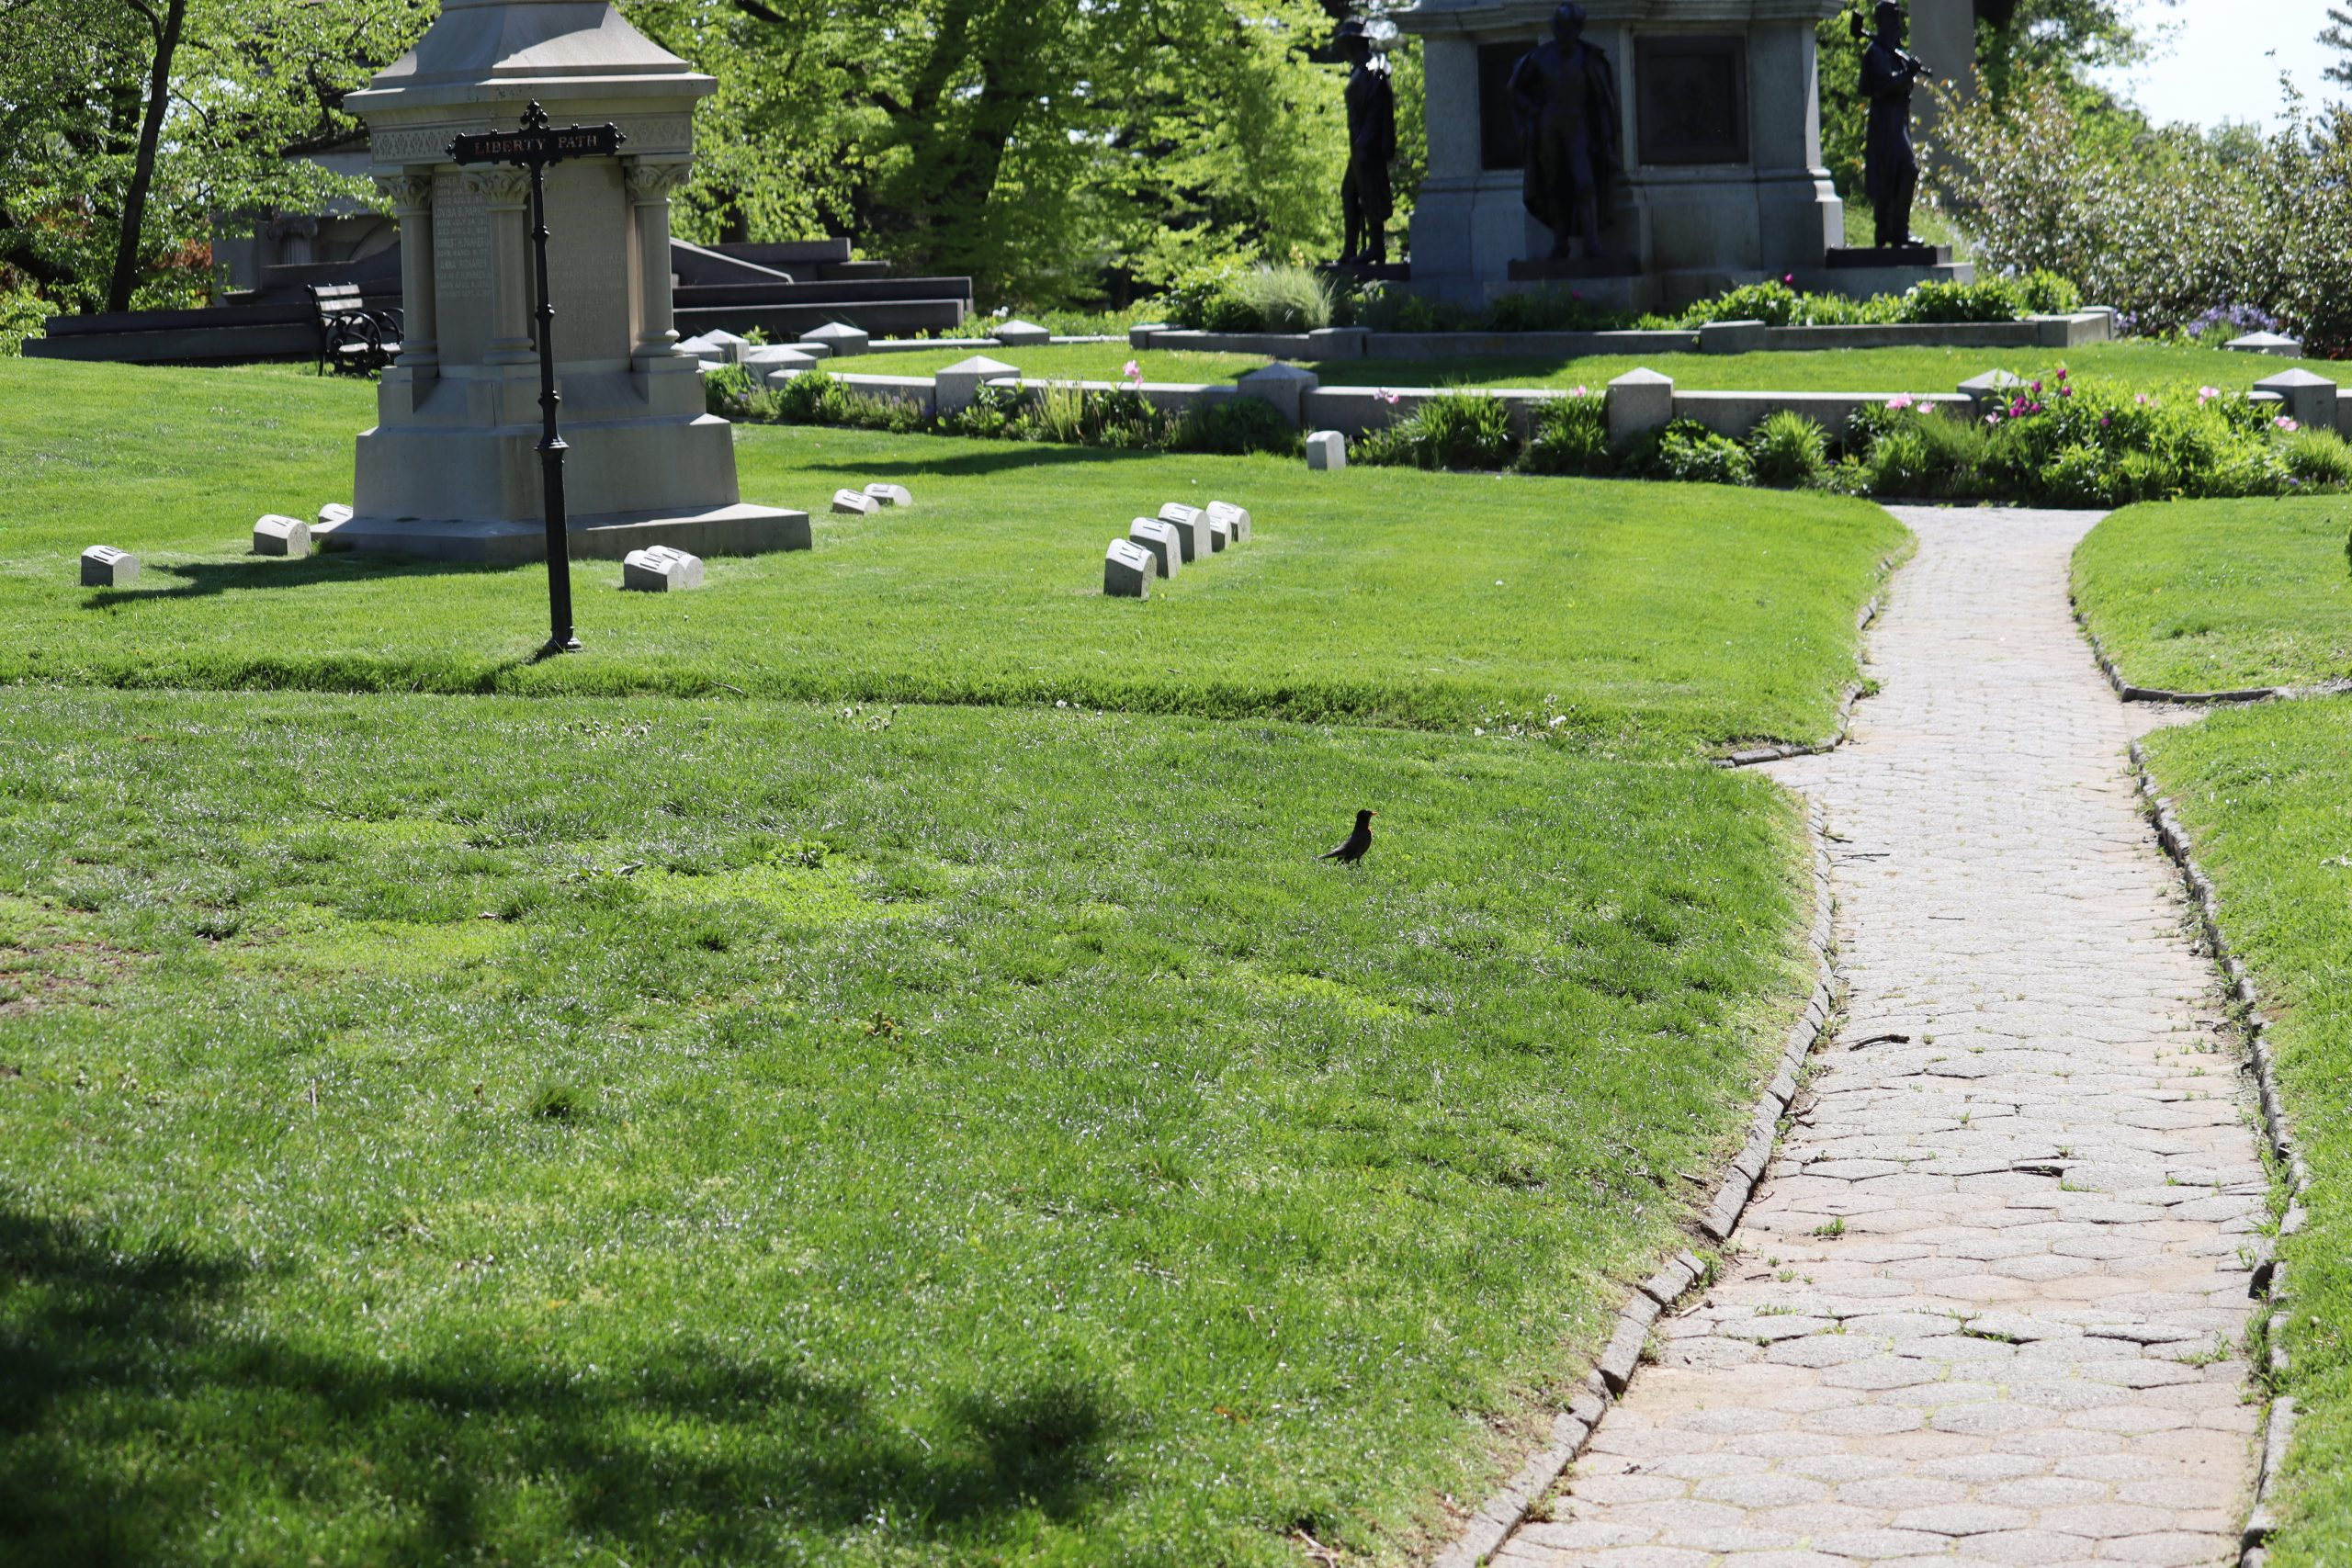 An American Robin in the grass at Green-Wood Cemetery; I used a 55MM lens length for this photo.